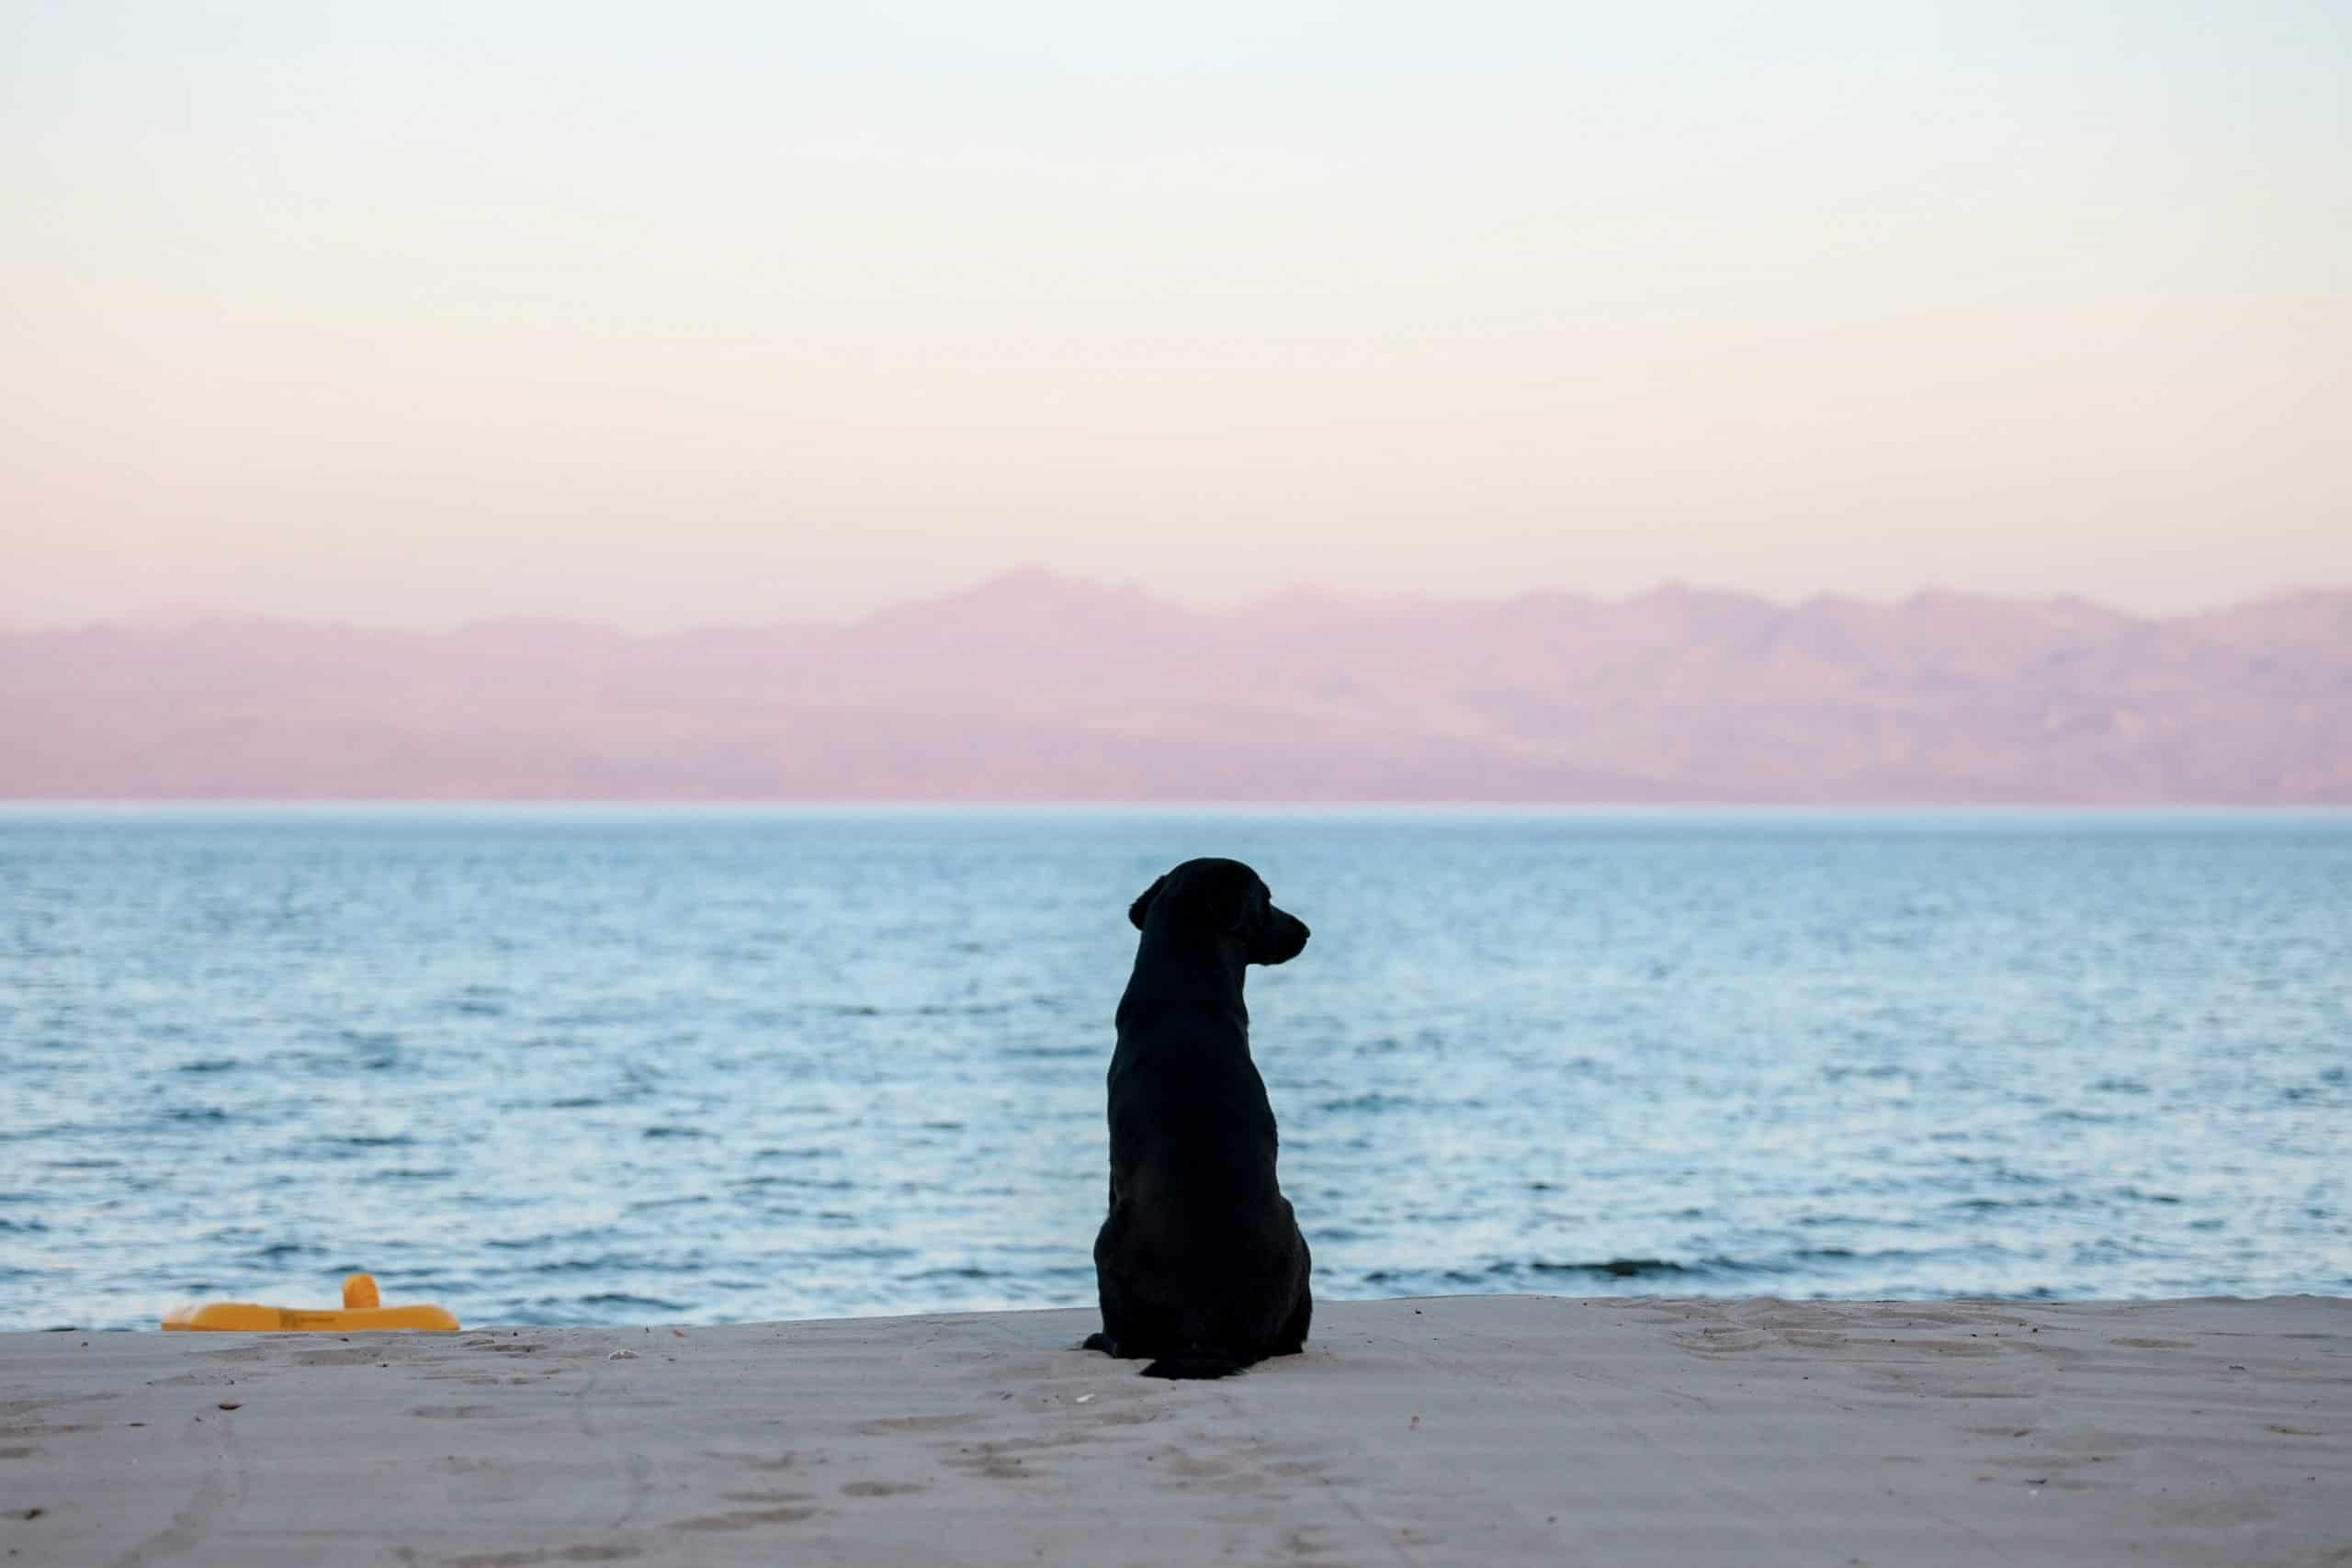 Dog watching the sunset over the ocean.